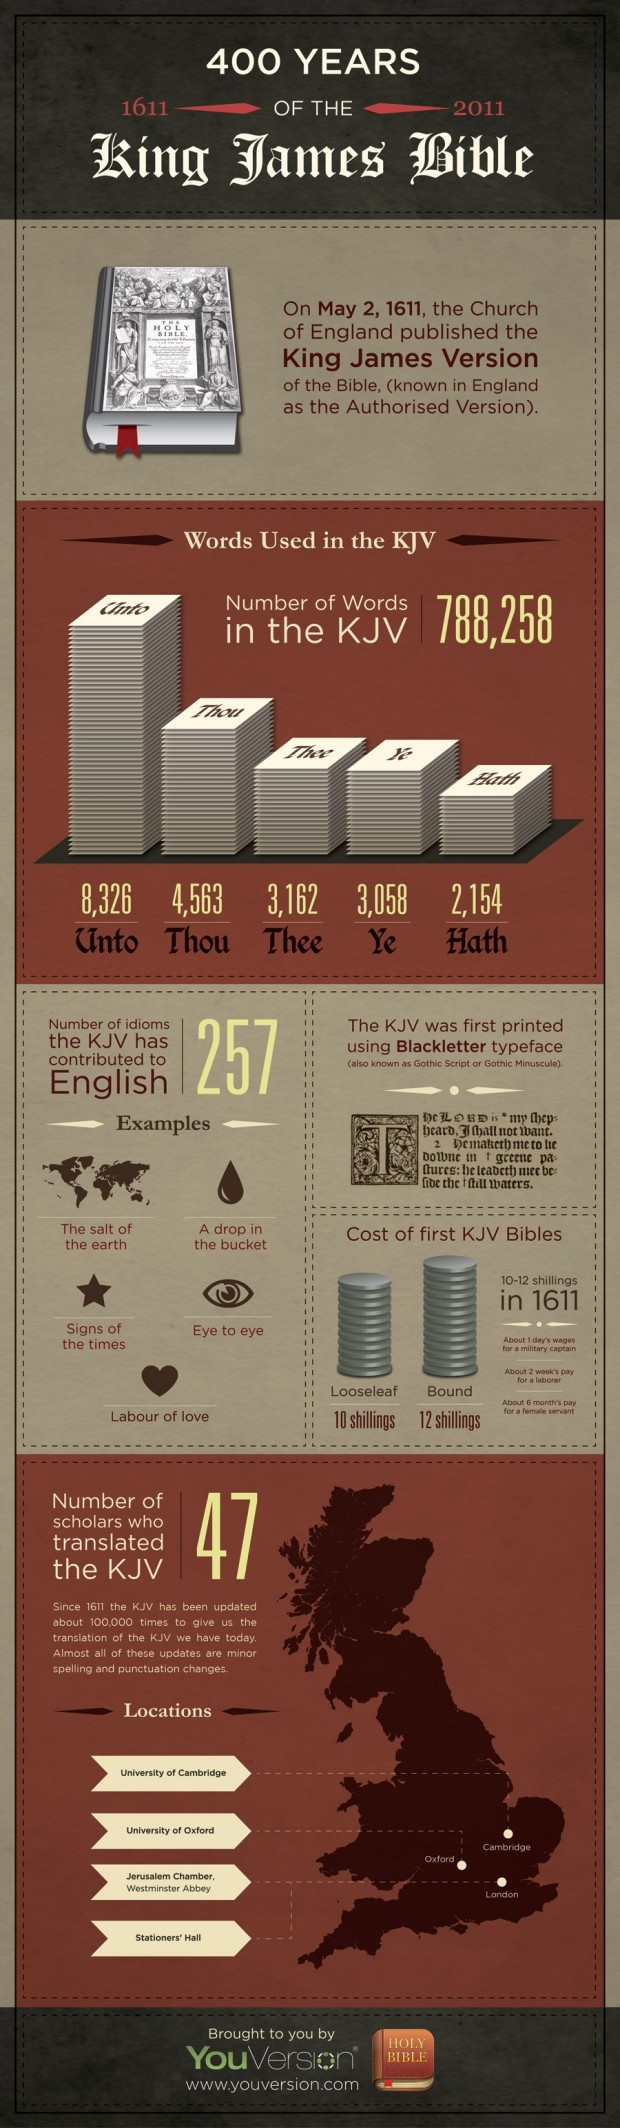 History of the King James Bible #infographic #bible